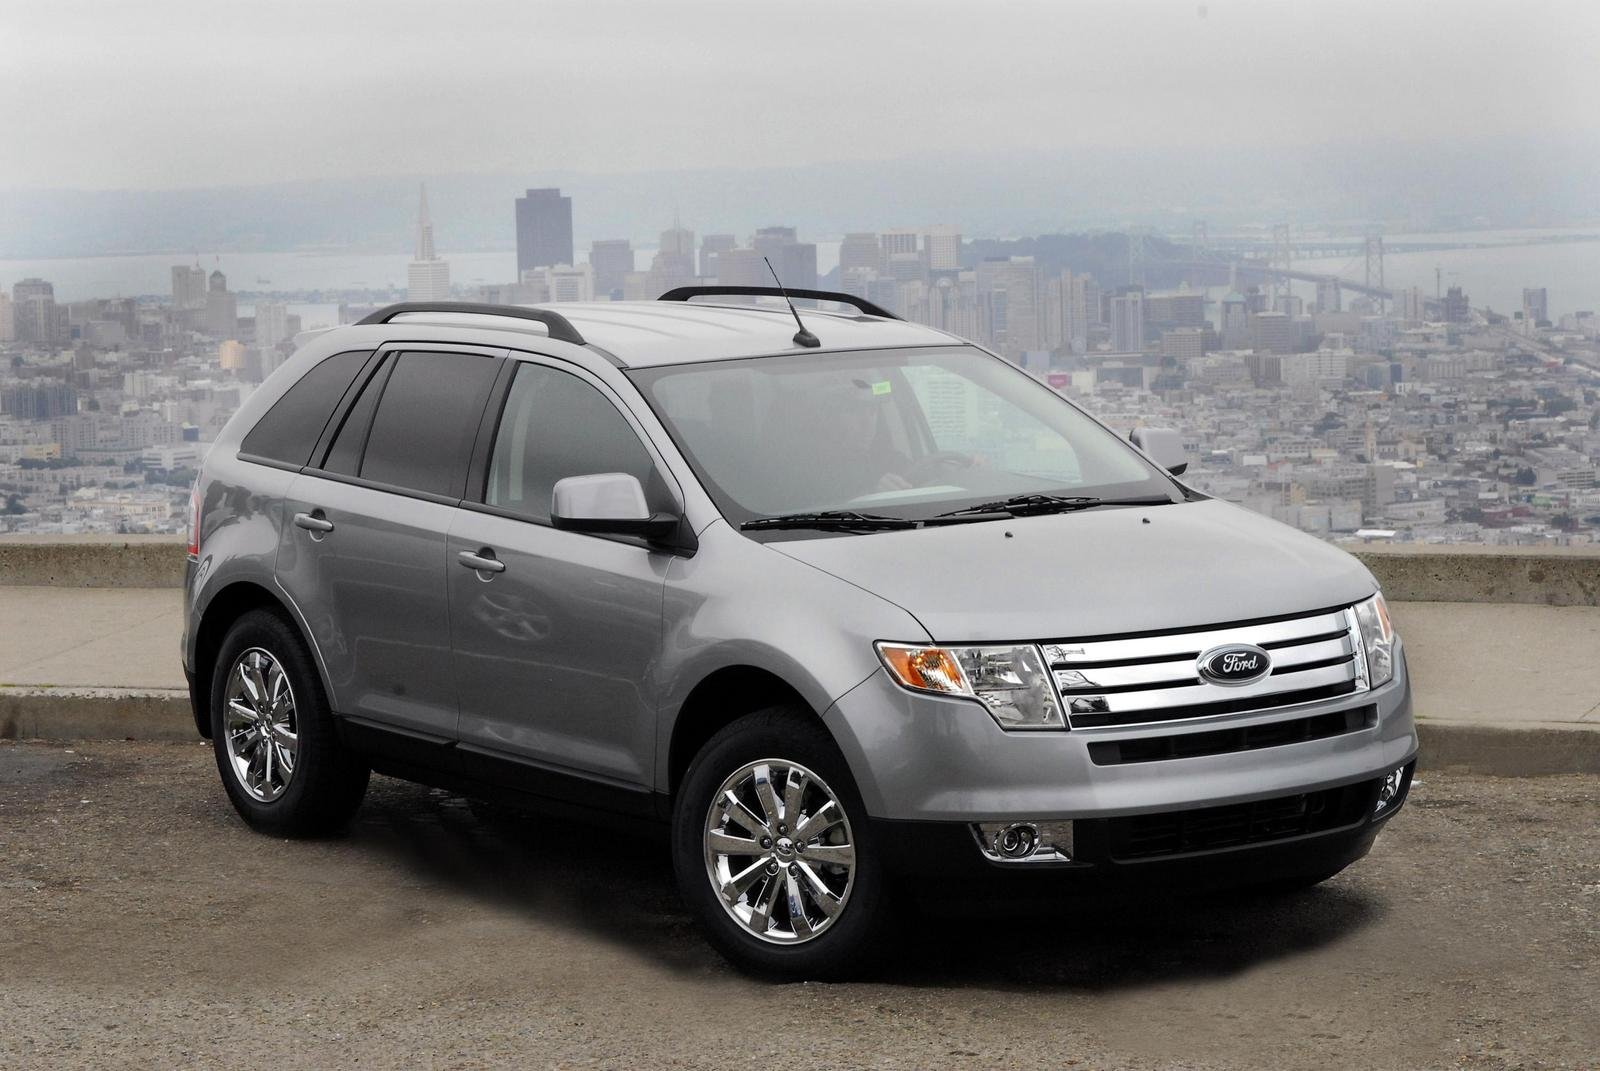 2007 ford edge picture 162014 car review top speed. Black Bedroom Furniture Sets. Home Design Ideas